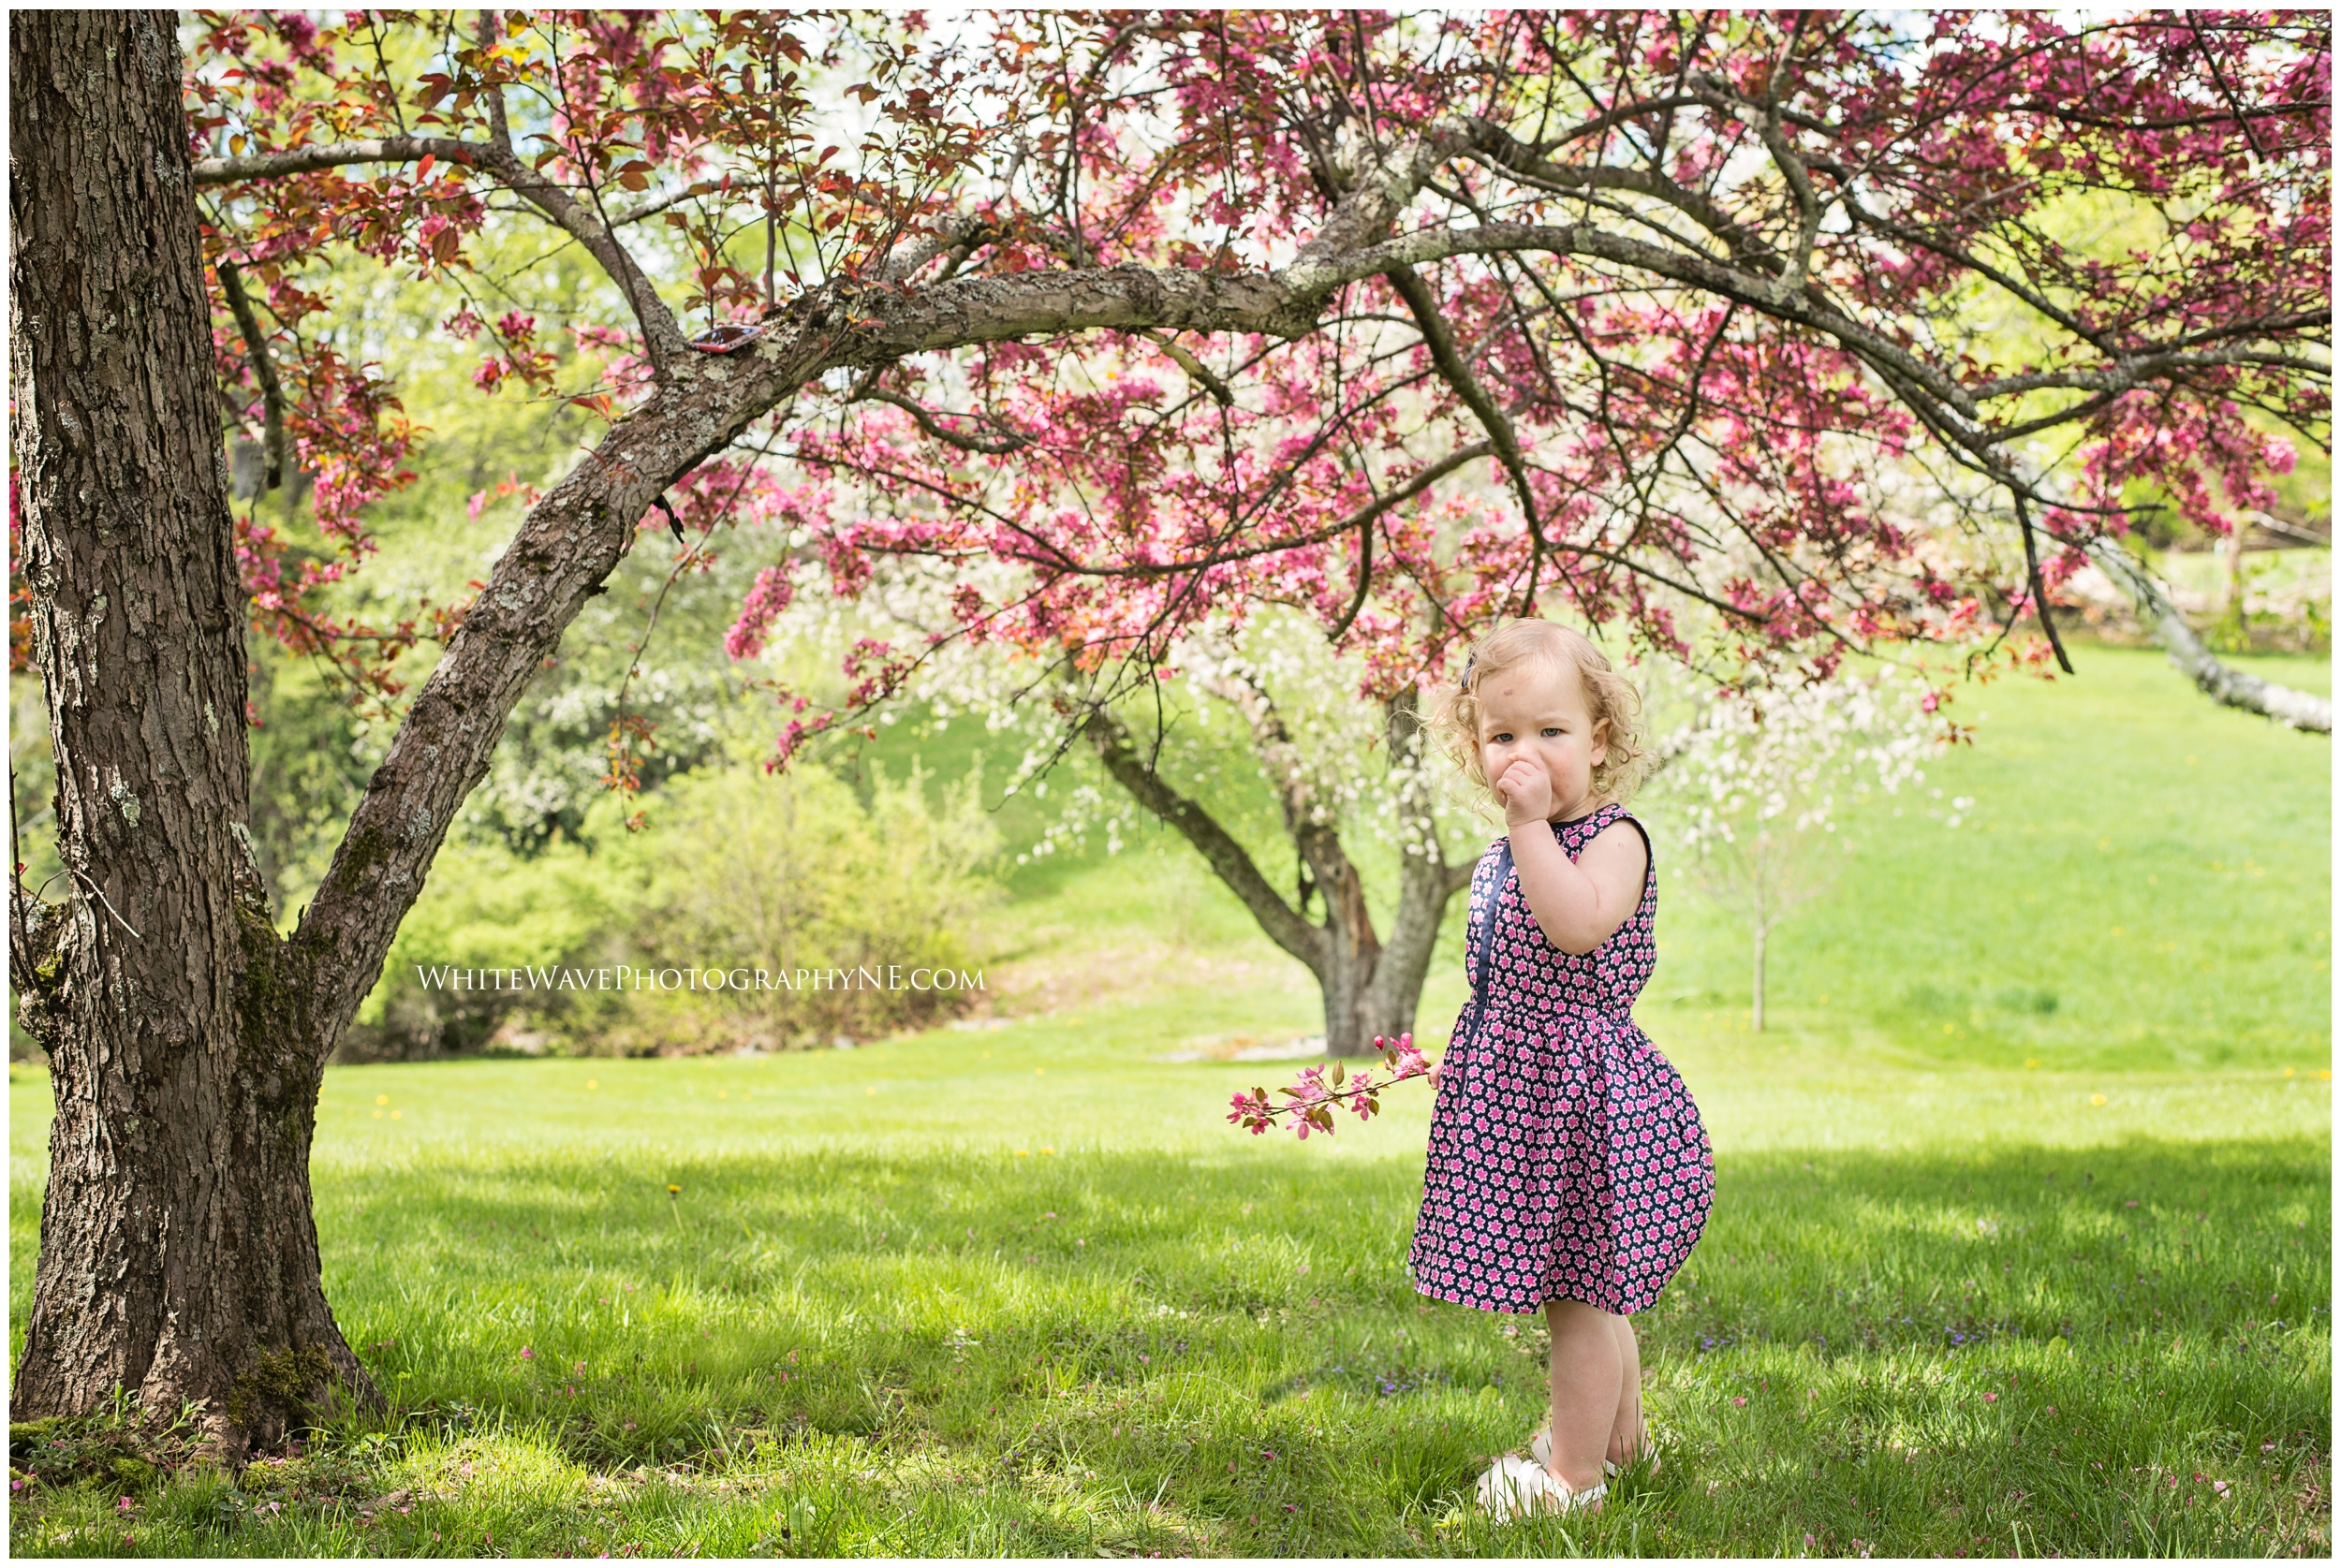 Childrens-Photographer-in-Southern-New-Hampshire_1376.jpg